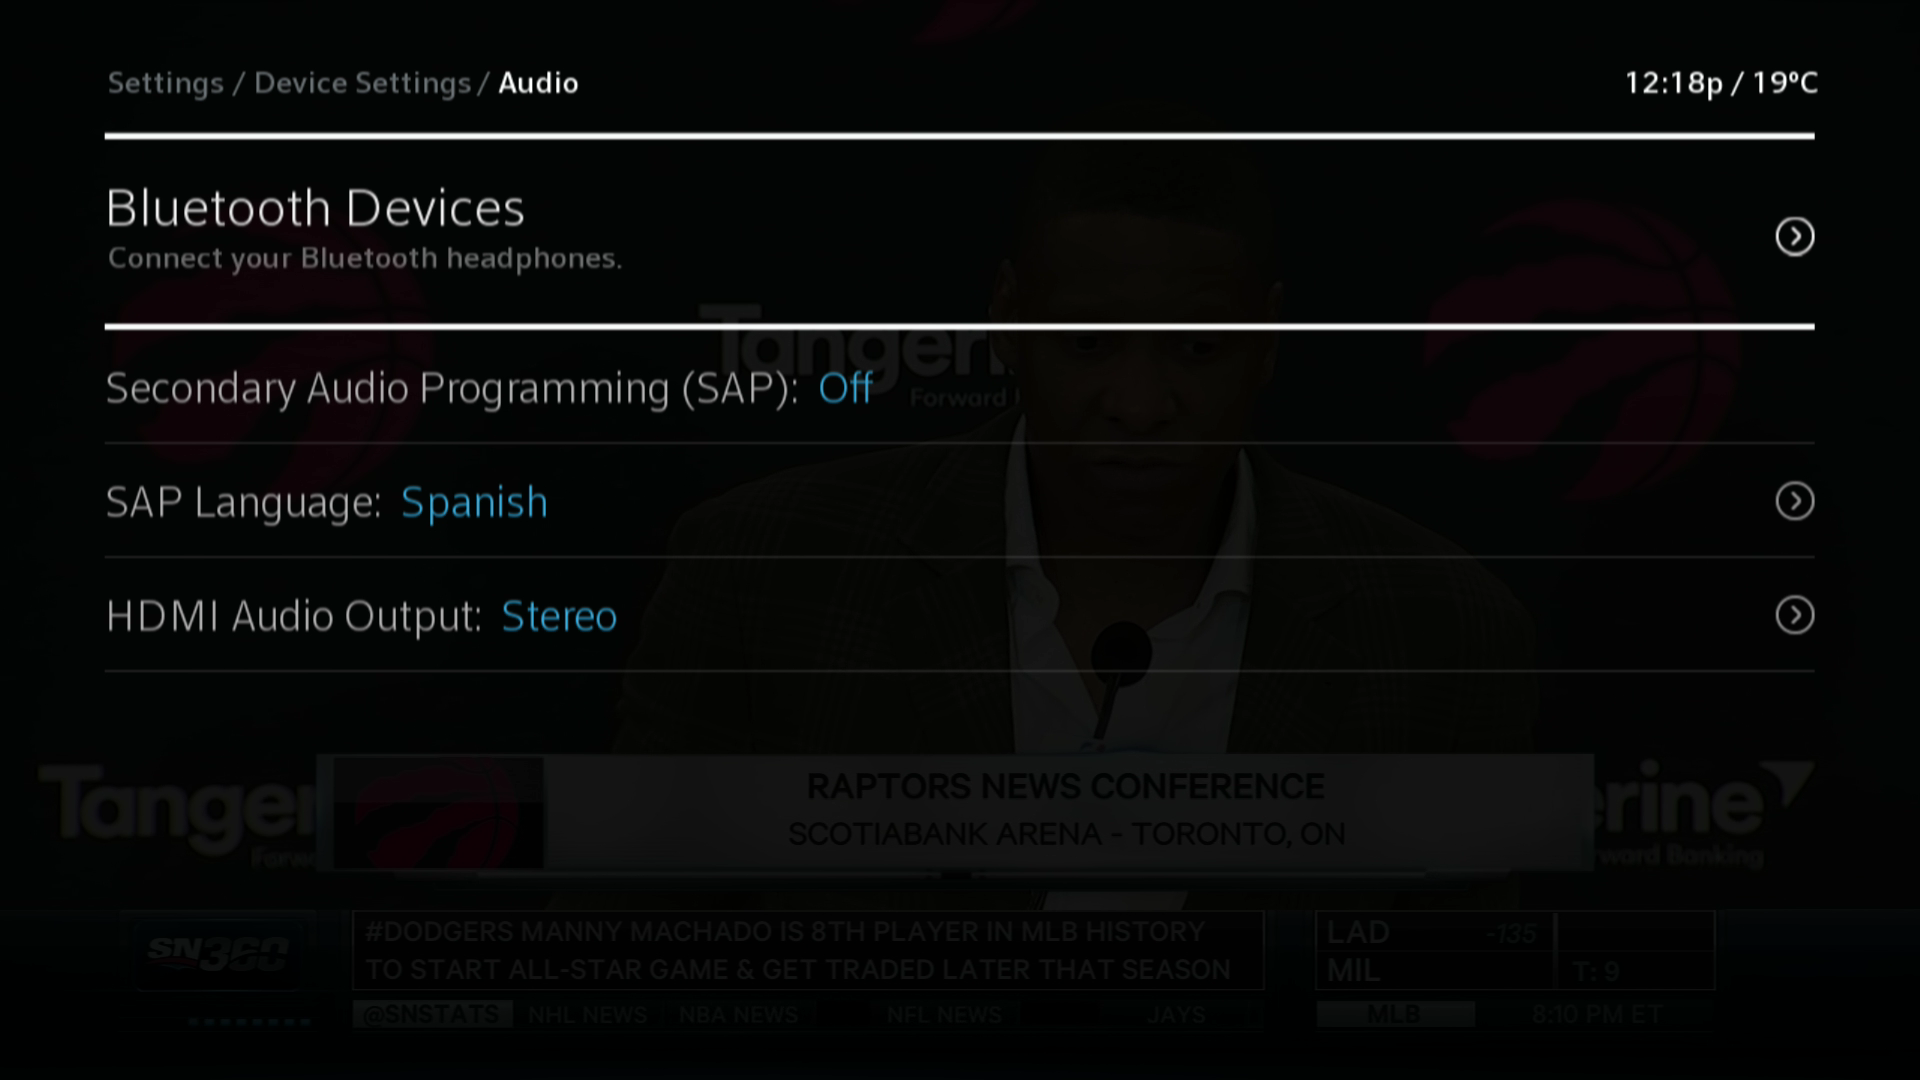 BlueSky TV Settings > Device Settings > Audio > Bluetooth Devices